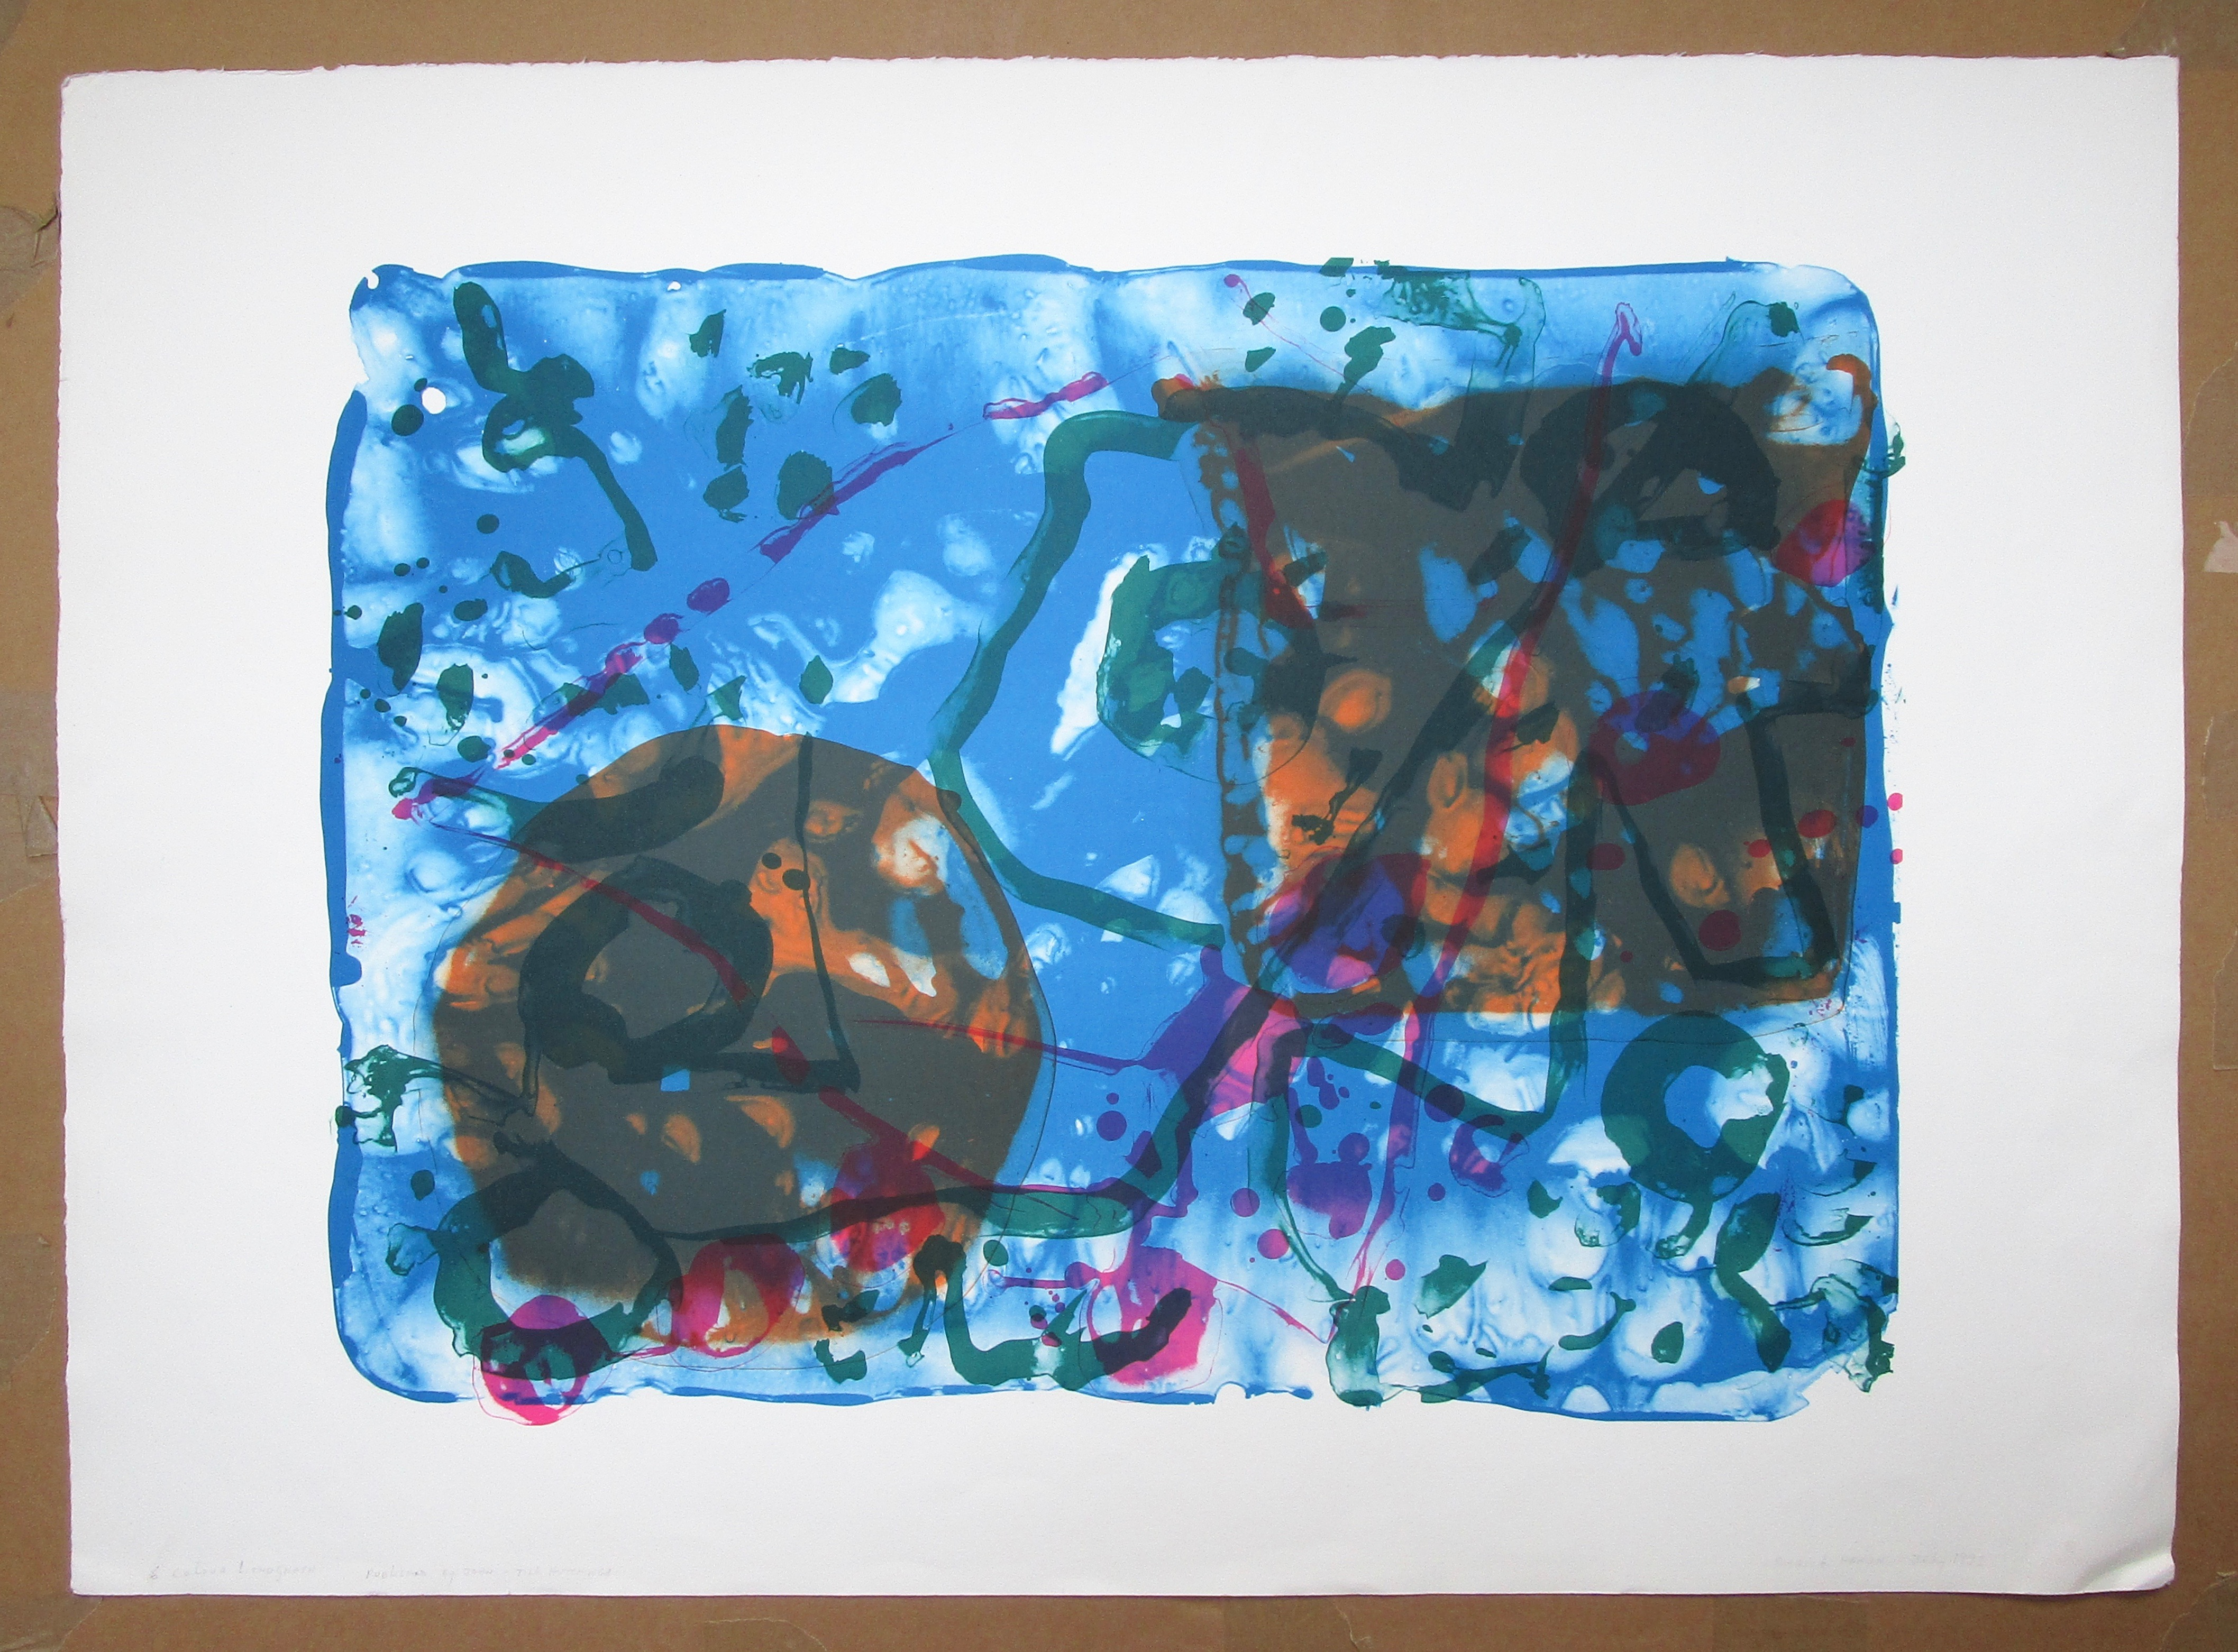 Lot 7 - PATRICK HERON [1920-1999] Anniversary, 1998.lithograph on Somerset paper, edition of 40, published